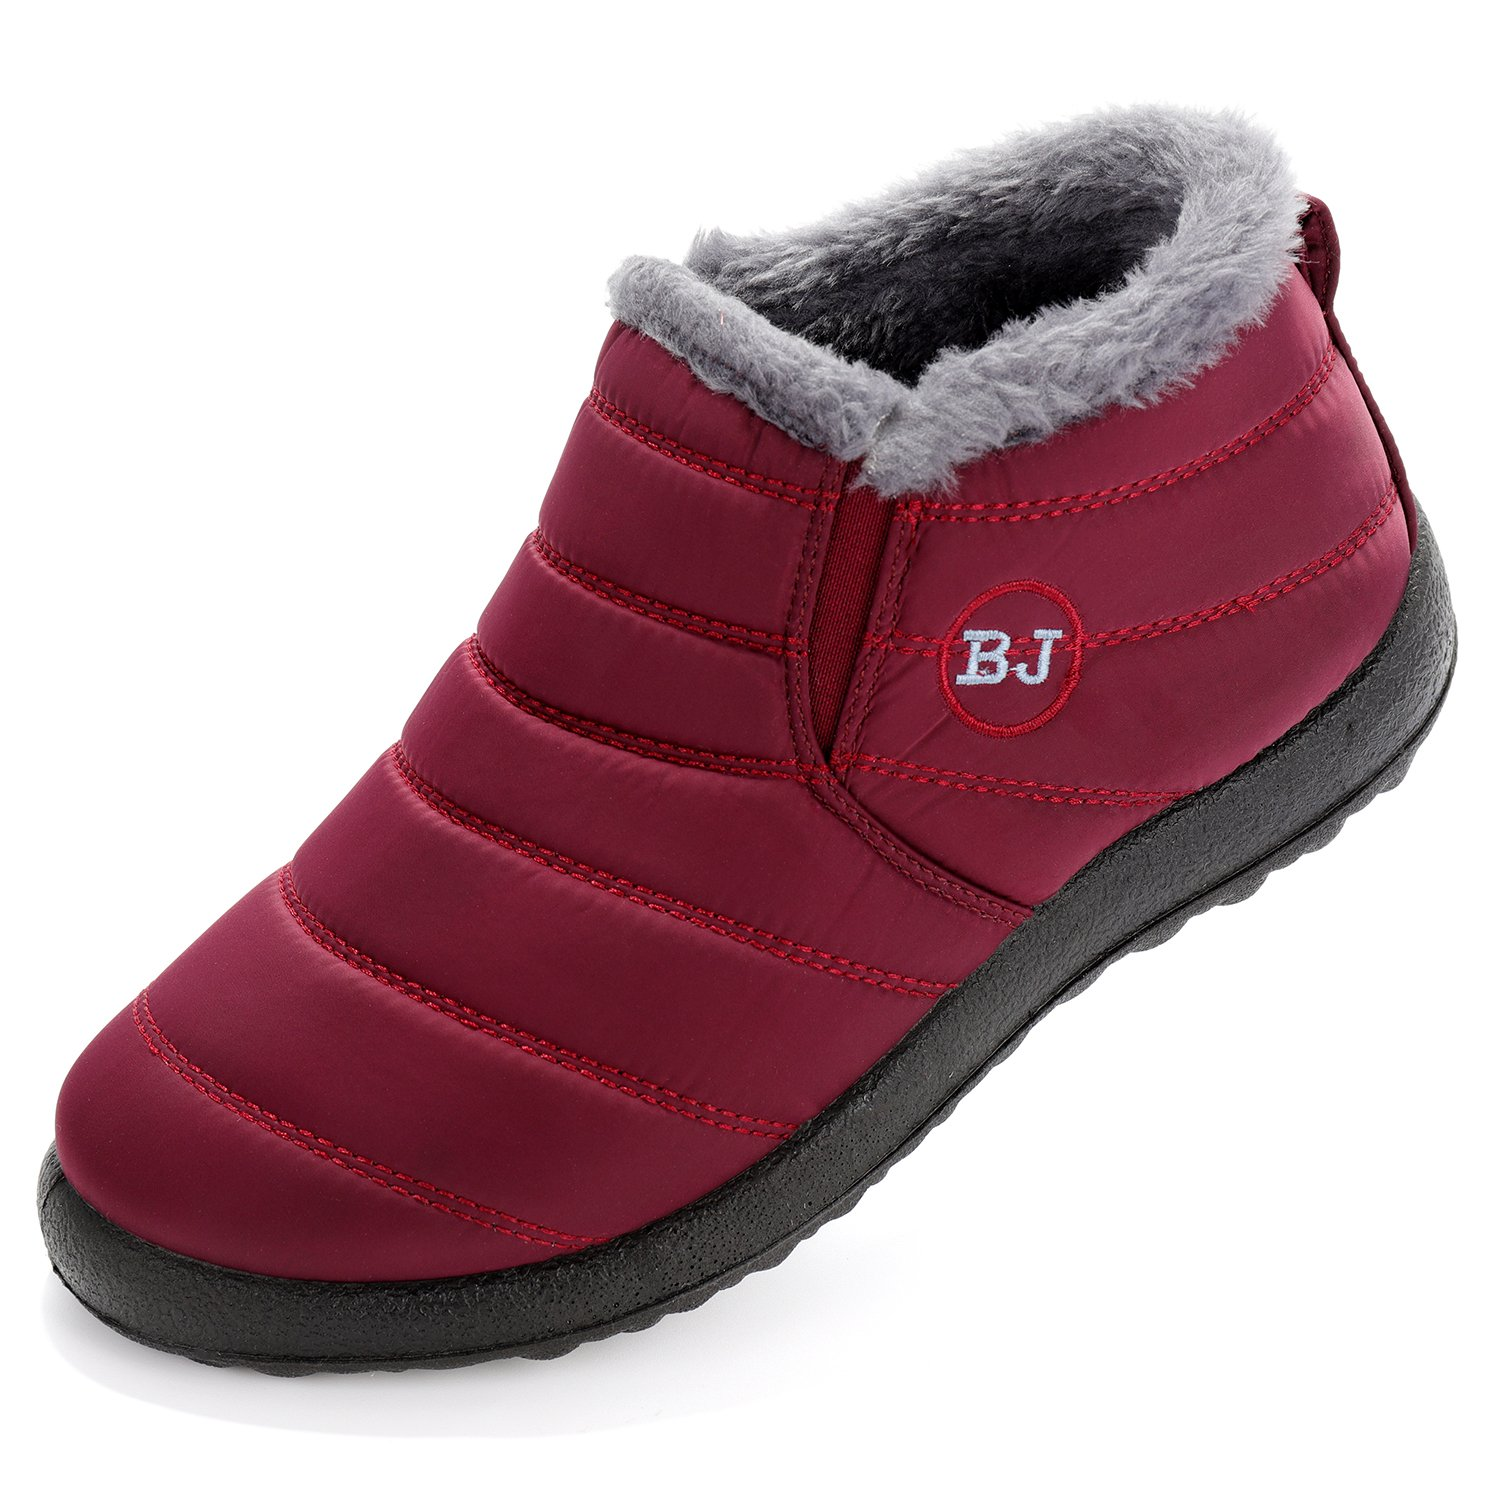 Cattle Shop Women Men Winter Slip-Proof Waterproof Snow Boots Outdoor Anti-Slip Snow Boots Warm Shoes